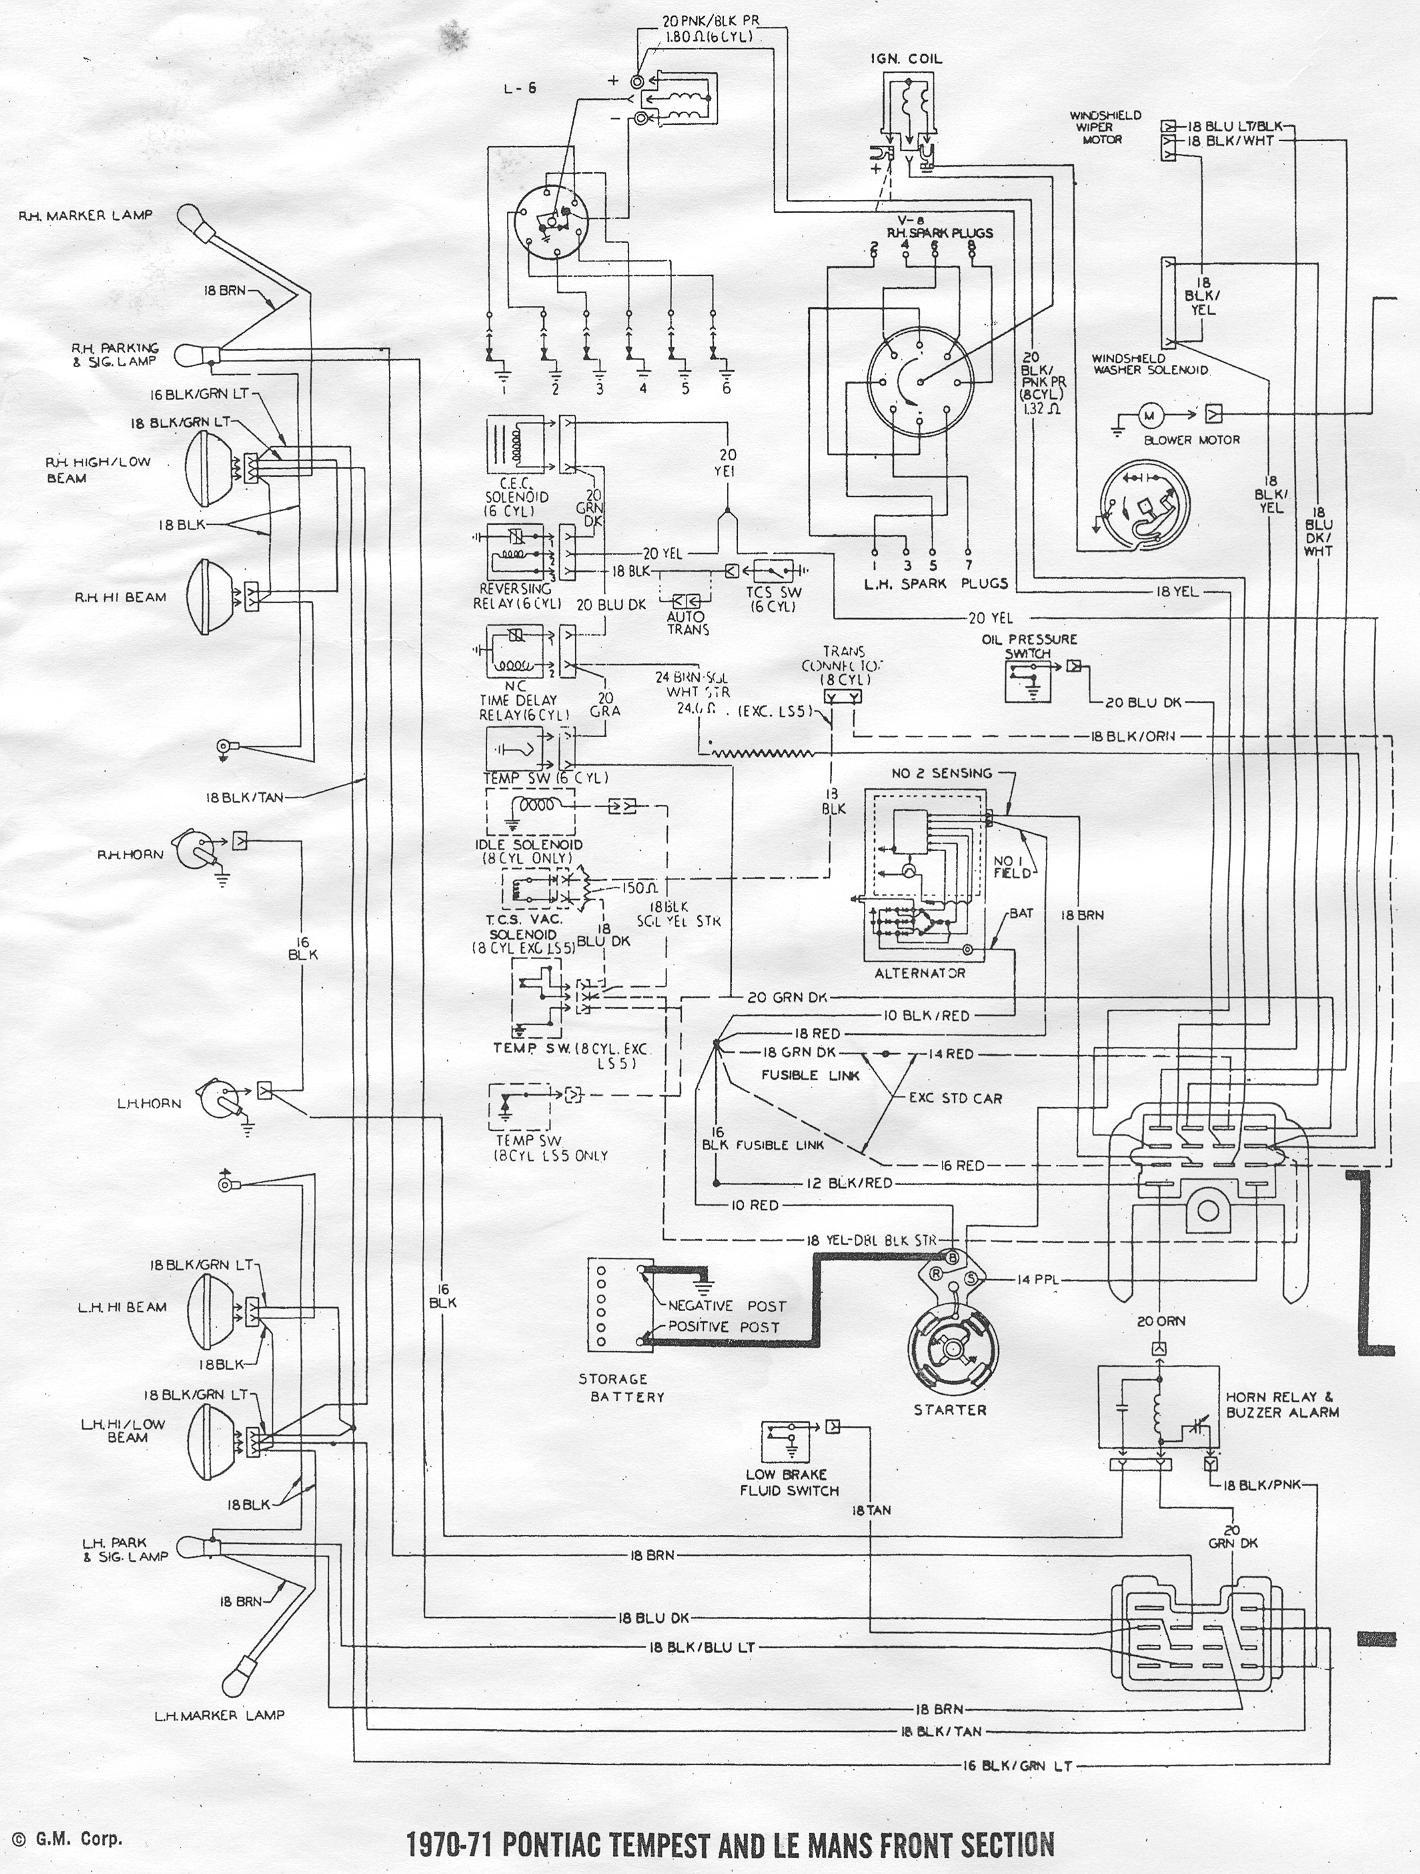 1968 Pontiac Gto Wiring Diagram Library Mustang Air Conditioning Click Image For Larger Version Name 70 71 Page1